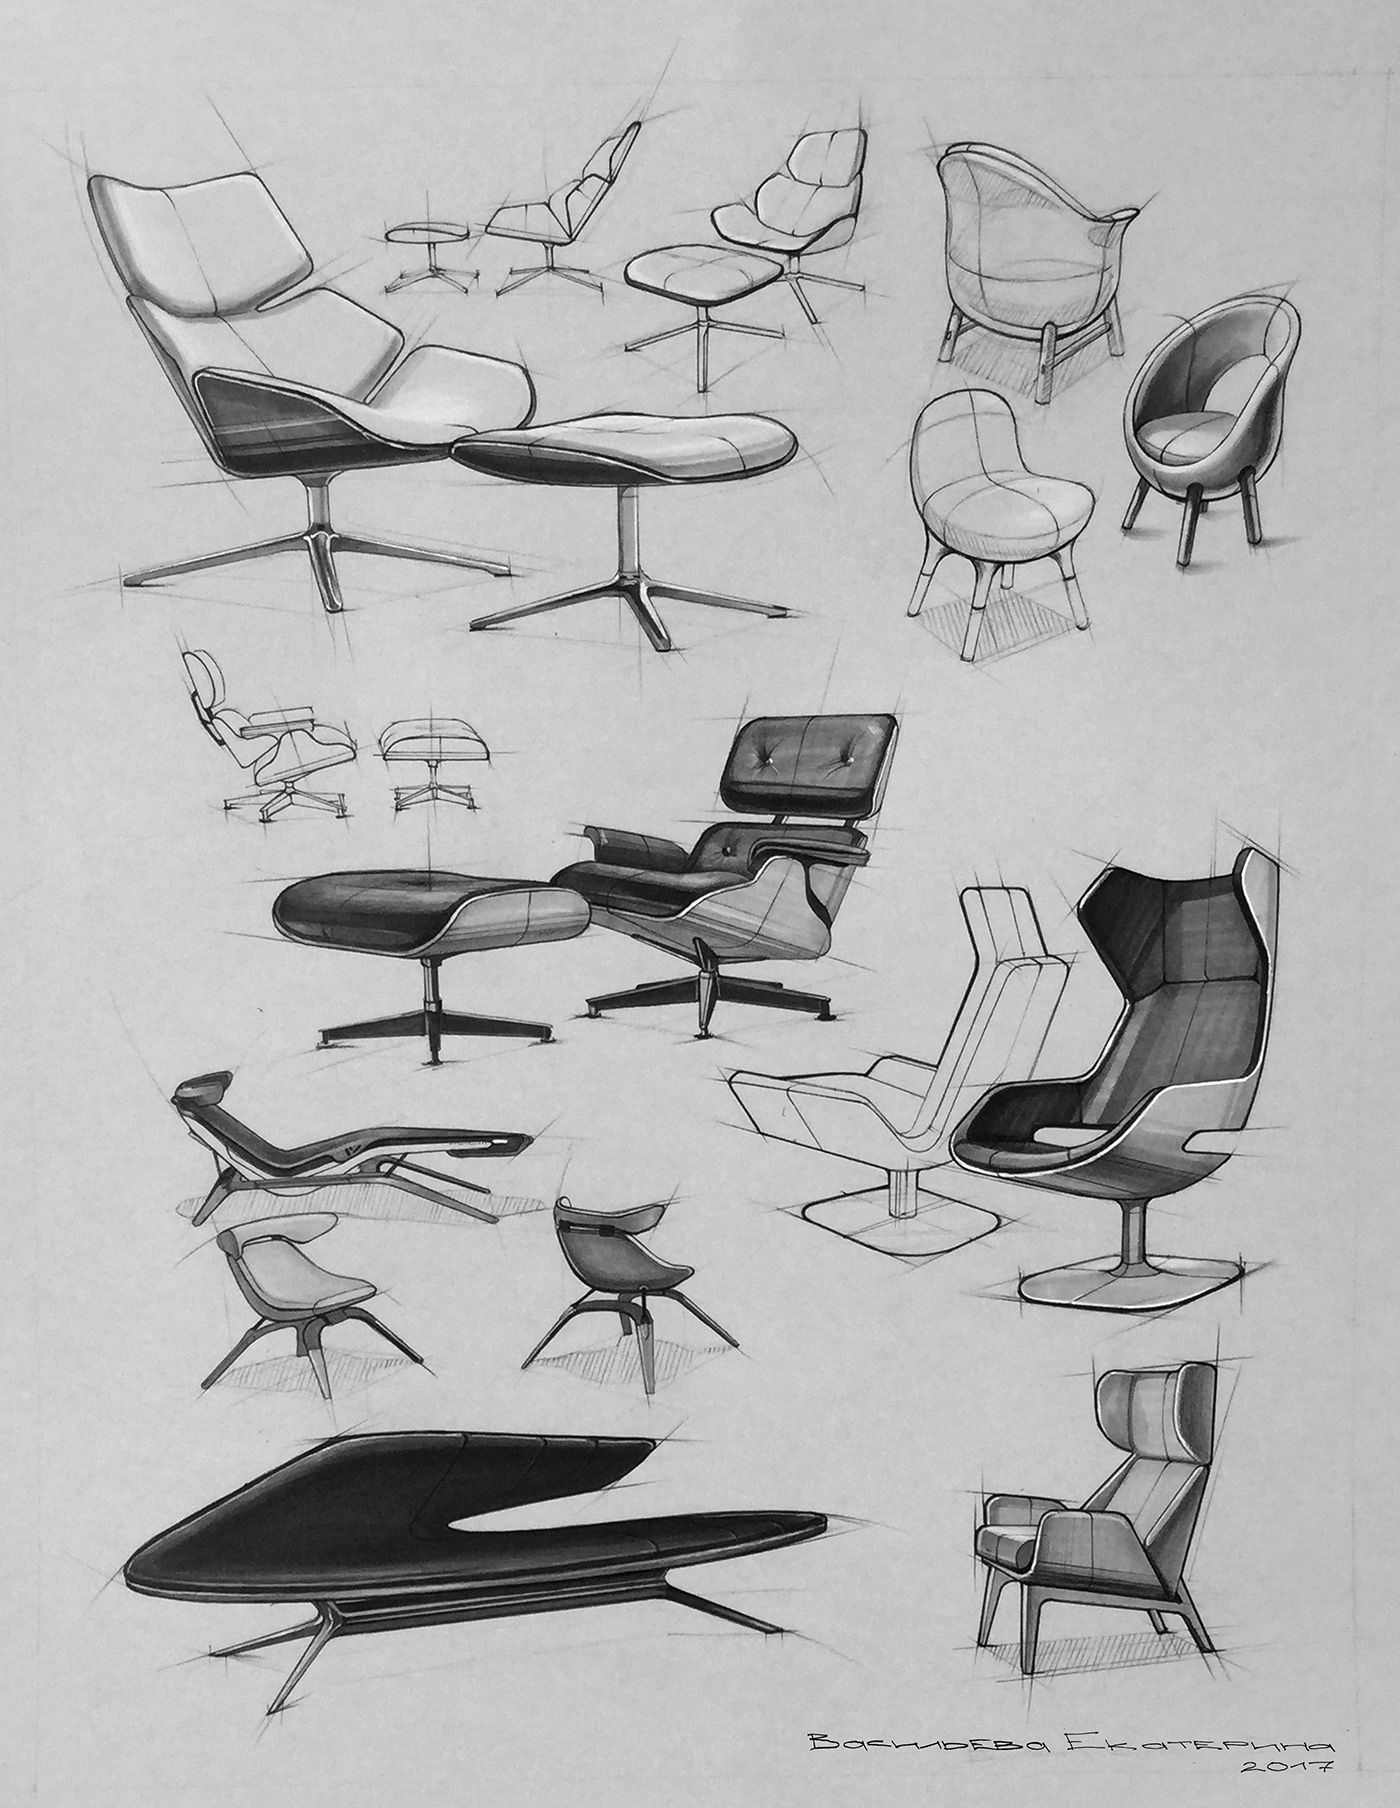 Https Www Behance Net Gallery 66004763 Furniture Sketches Sketch Chair Productdesign Furniture Design Sketches Furniture Sketch Industrial Design Sketch